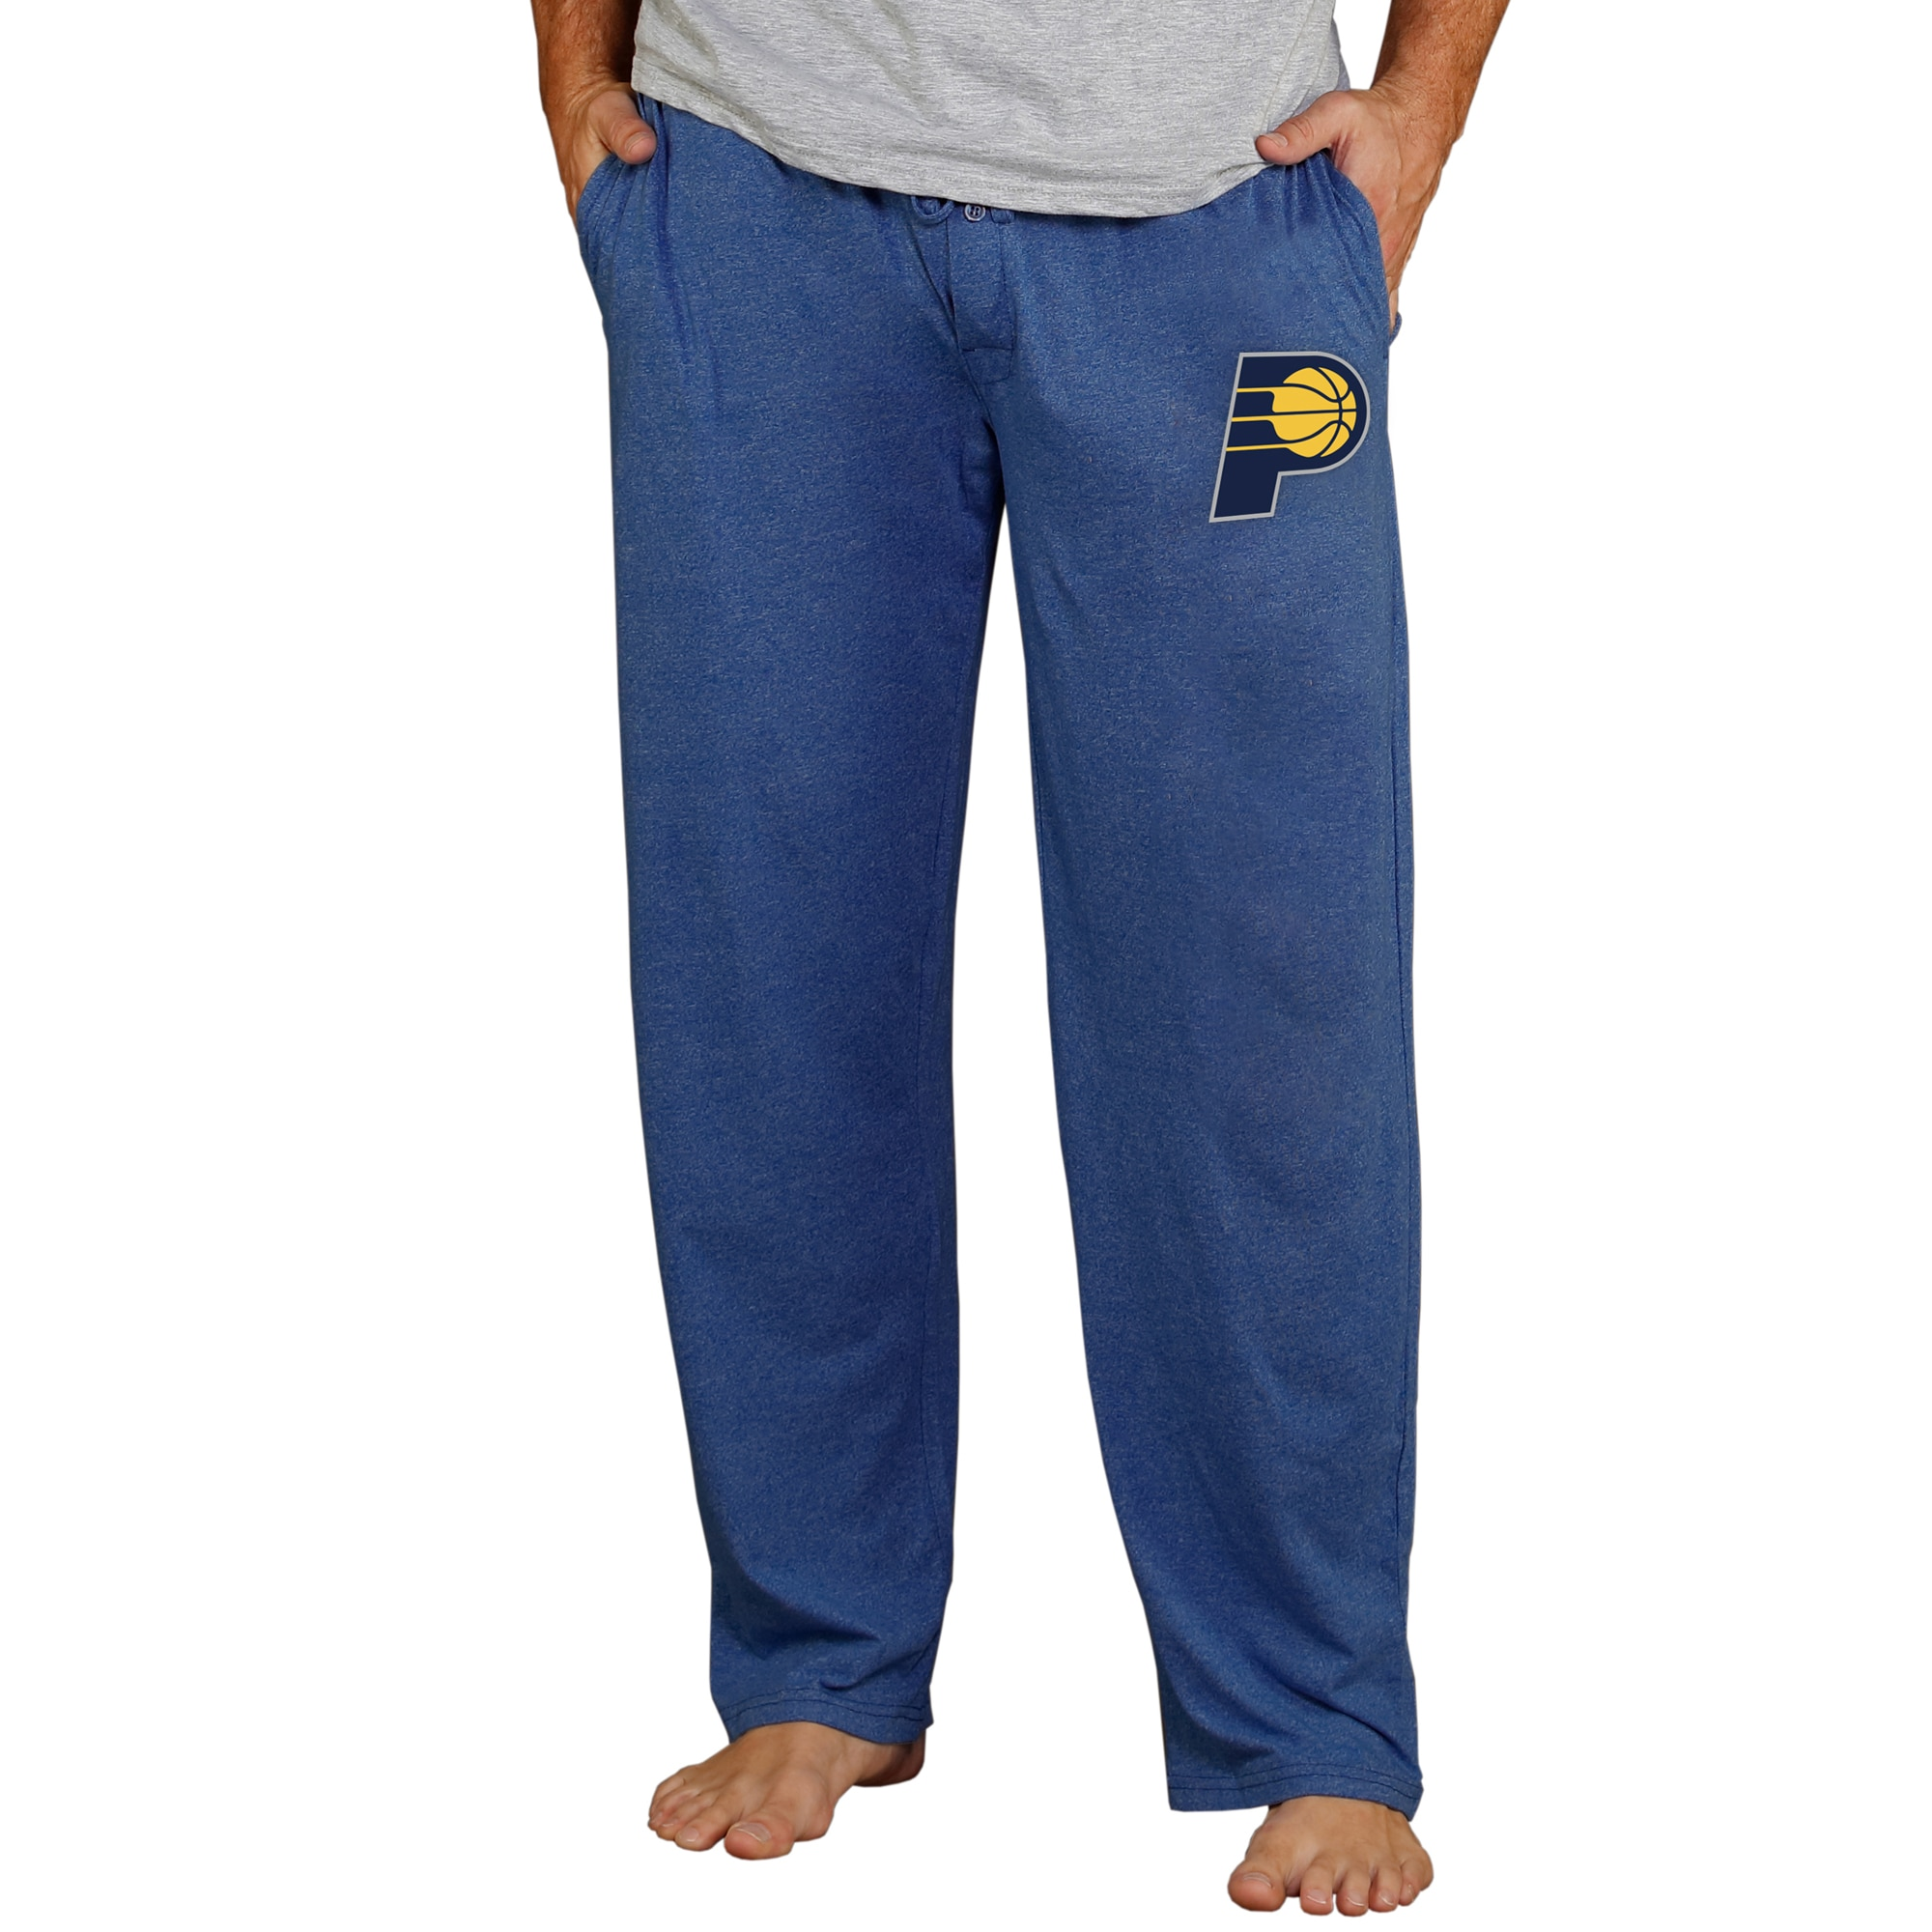 Indiana Pacers Concepts Sport Quest Knit Pants - Navy